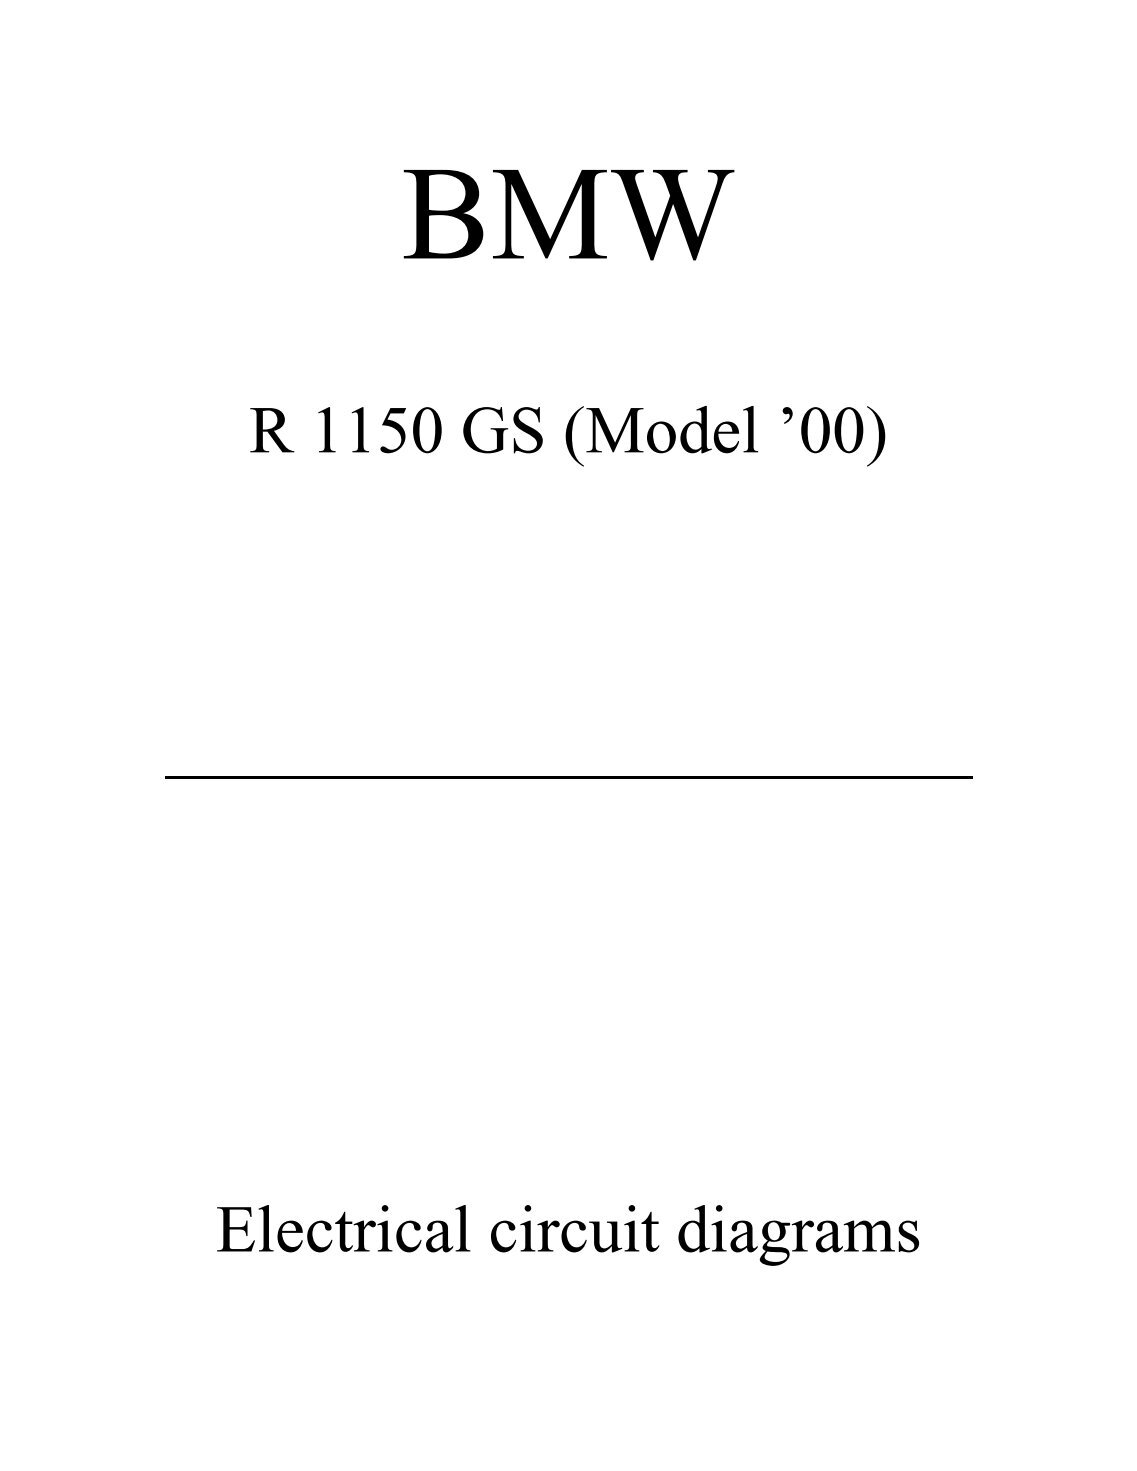 WRG-1907] Bmw 1150 Gs Wiring Diagram on